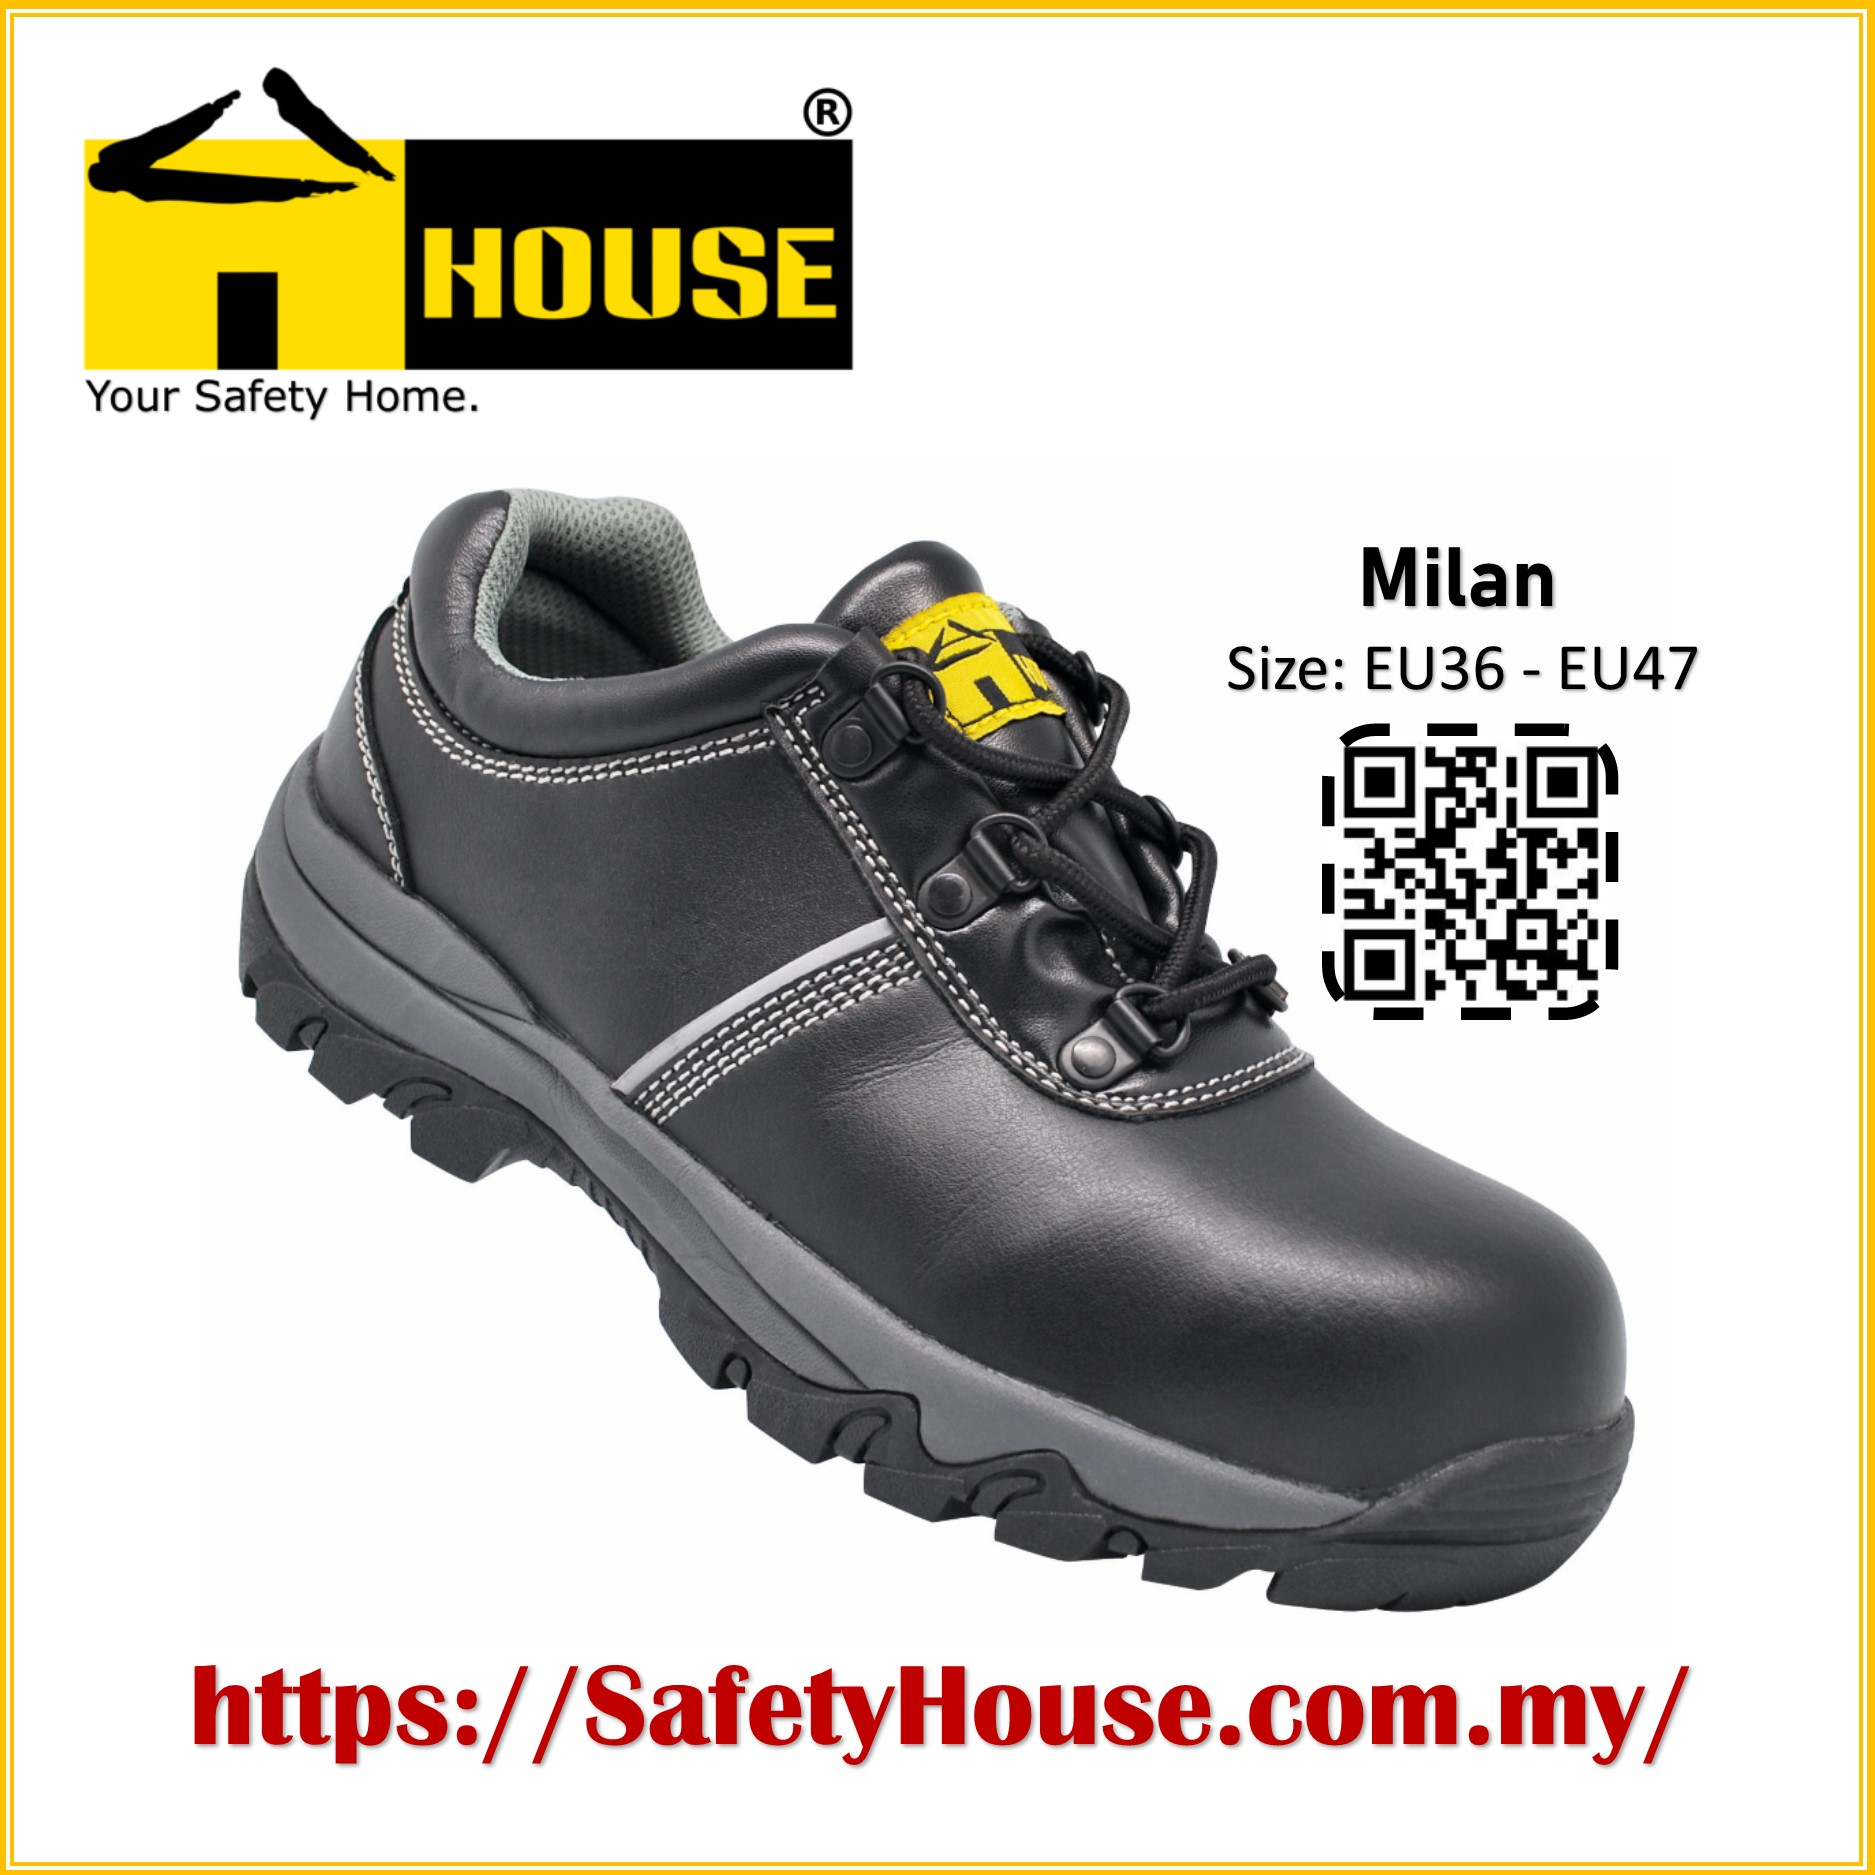 HOUSE MILAN SAFETY SHOES C/W COMPOSITE TOE CAP & ARAMID MID SOLE Image